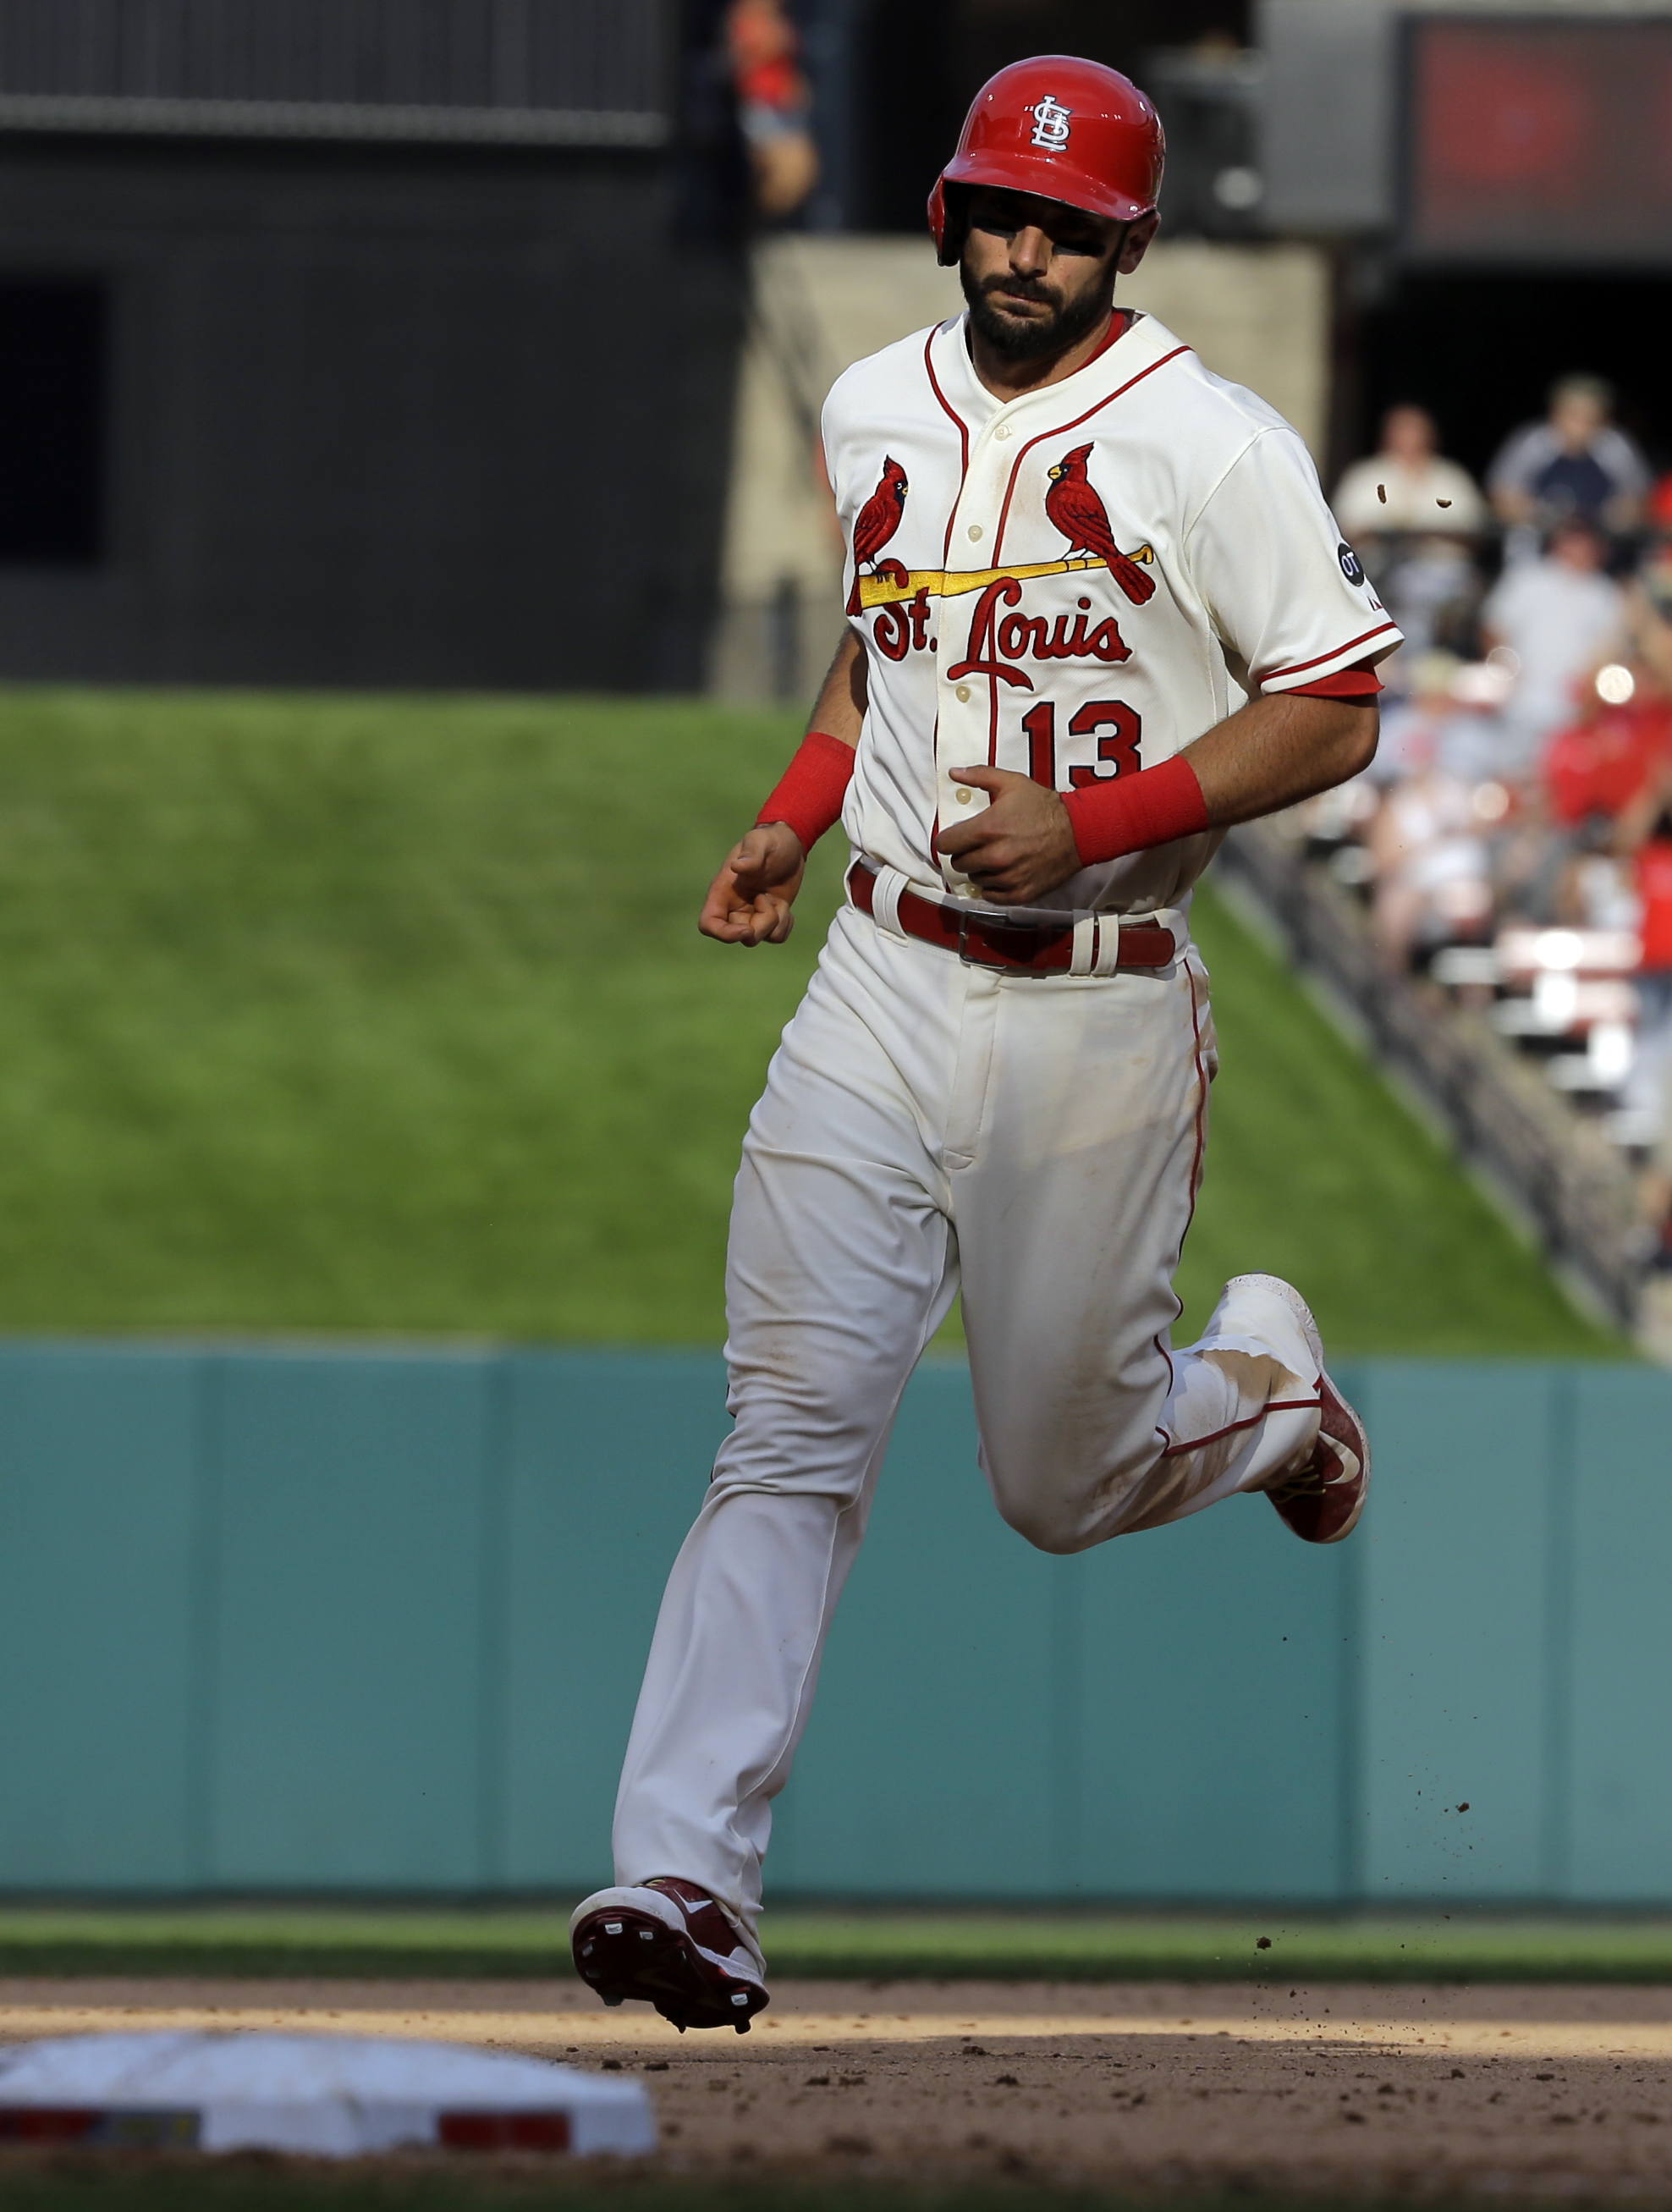 St. Louis Cardinals' Matt Carpenter rounds the bases after hitting a two-run home run during the seventh inning of a baseball game against the Pittsburgh Pirates, Saturday, Sept. 5, 2015, in St. Louis. (AP Photo/Jeff Roberson)